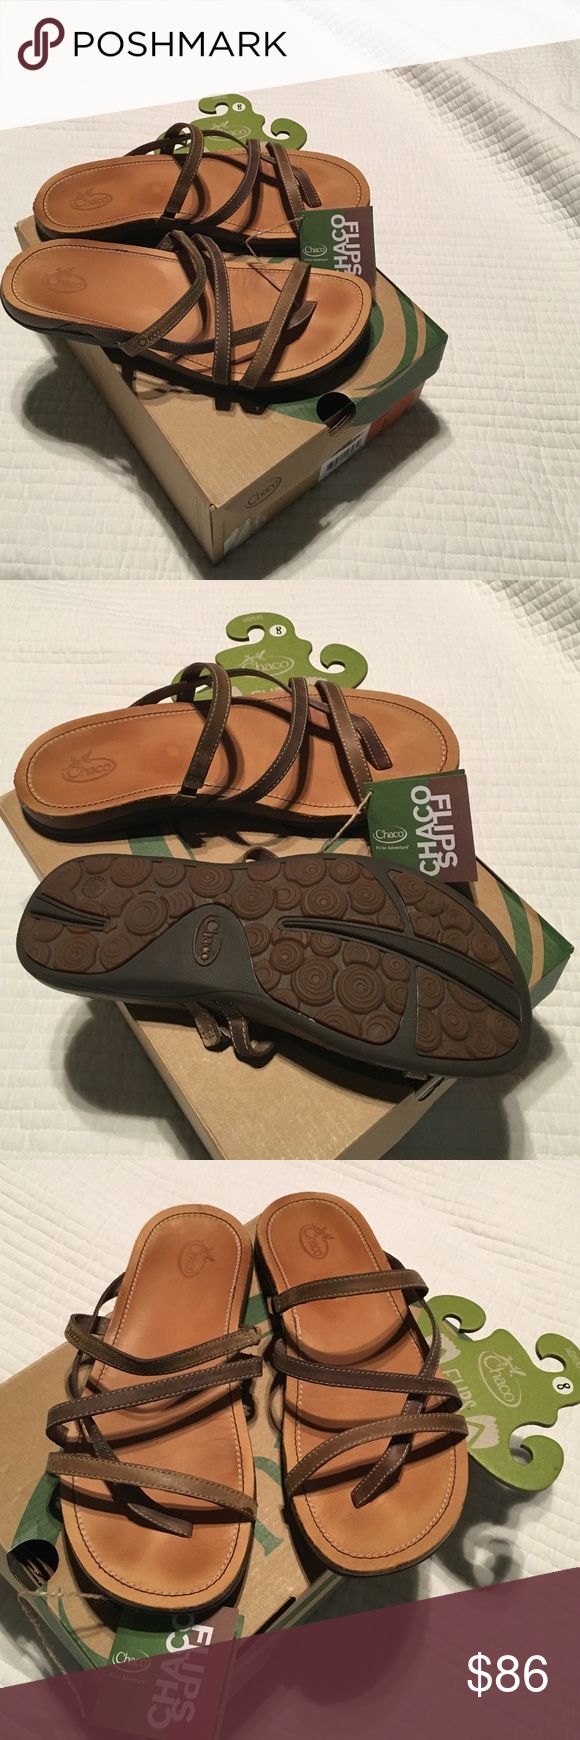 TODAY ONLY SALE Chaco  Leather Sandals, ladies Excellent condition, only worn maybe three times if that. You can tell from picture. Just bought in July 2016. They just don't work for me ,  I needed a bigger size. I have the box as pictured.  All Leather straps, ultra soft pigskin lining across nubuck leather footbeds. Brown in color, women's, 💯 % authentic, down from $ 75.00 Chacos Shoes Sandals